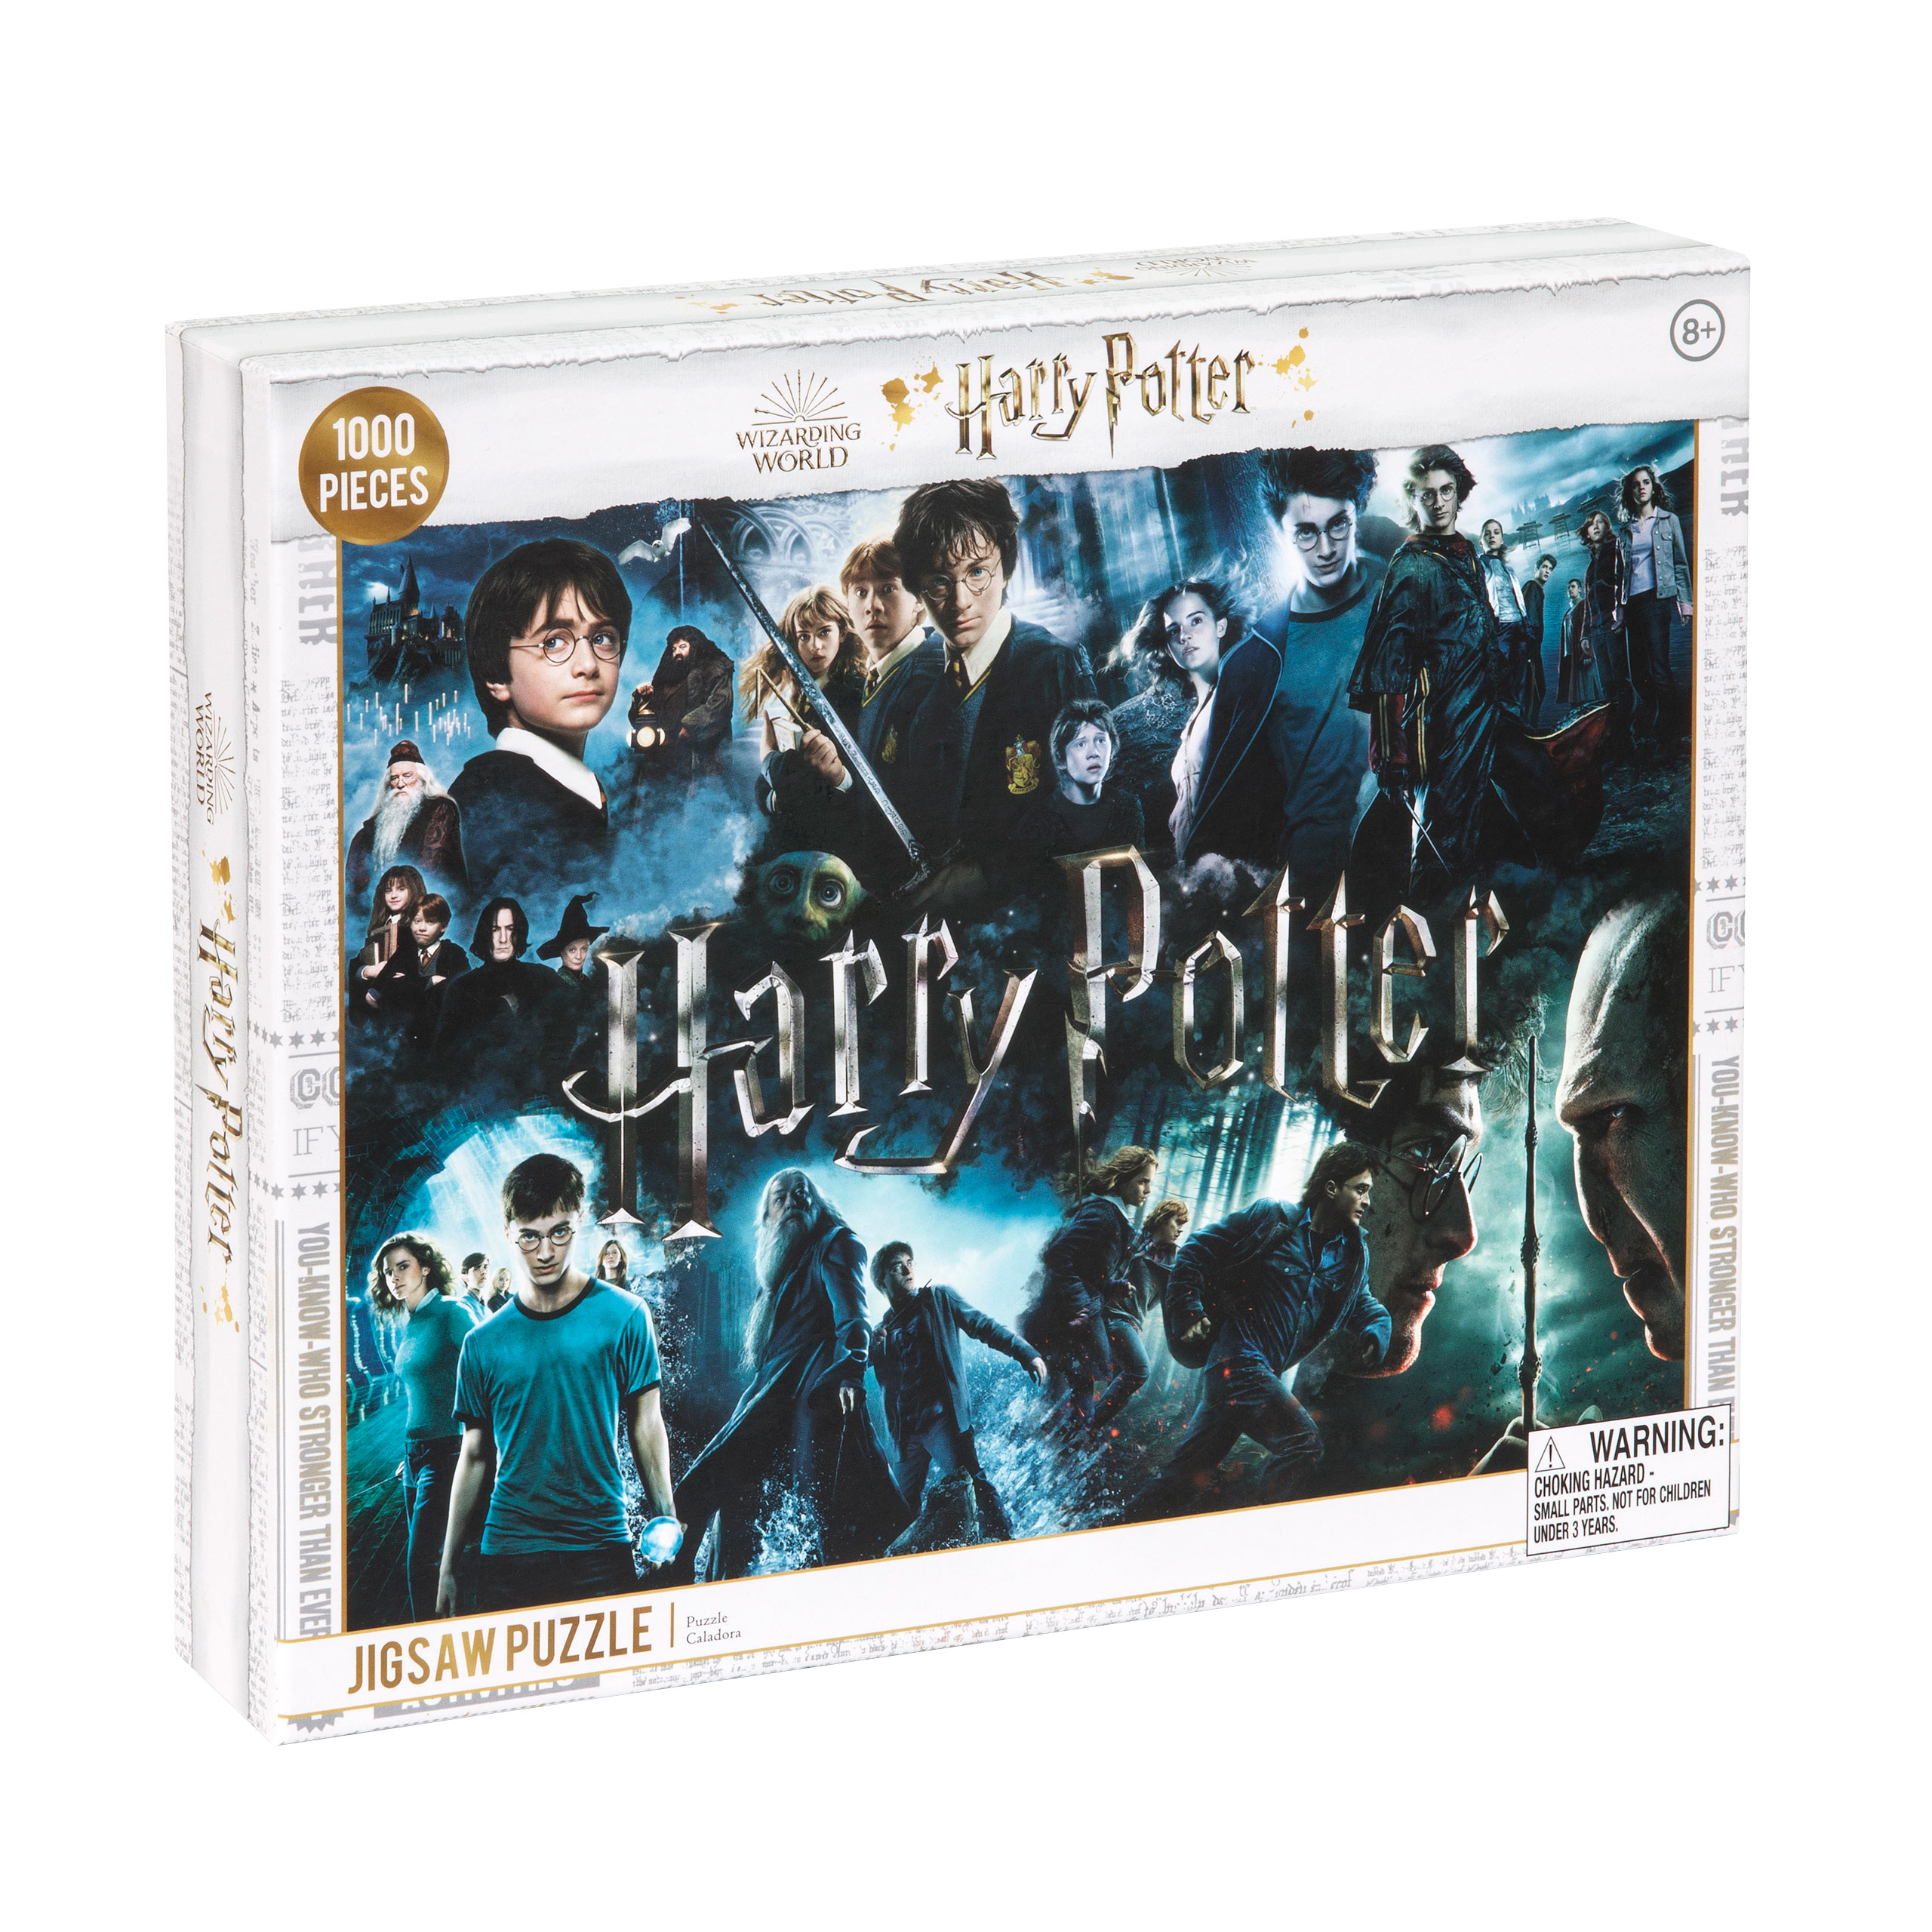 Harry Potter - Poster Collage Puzzle